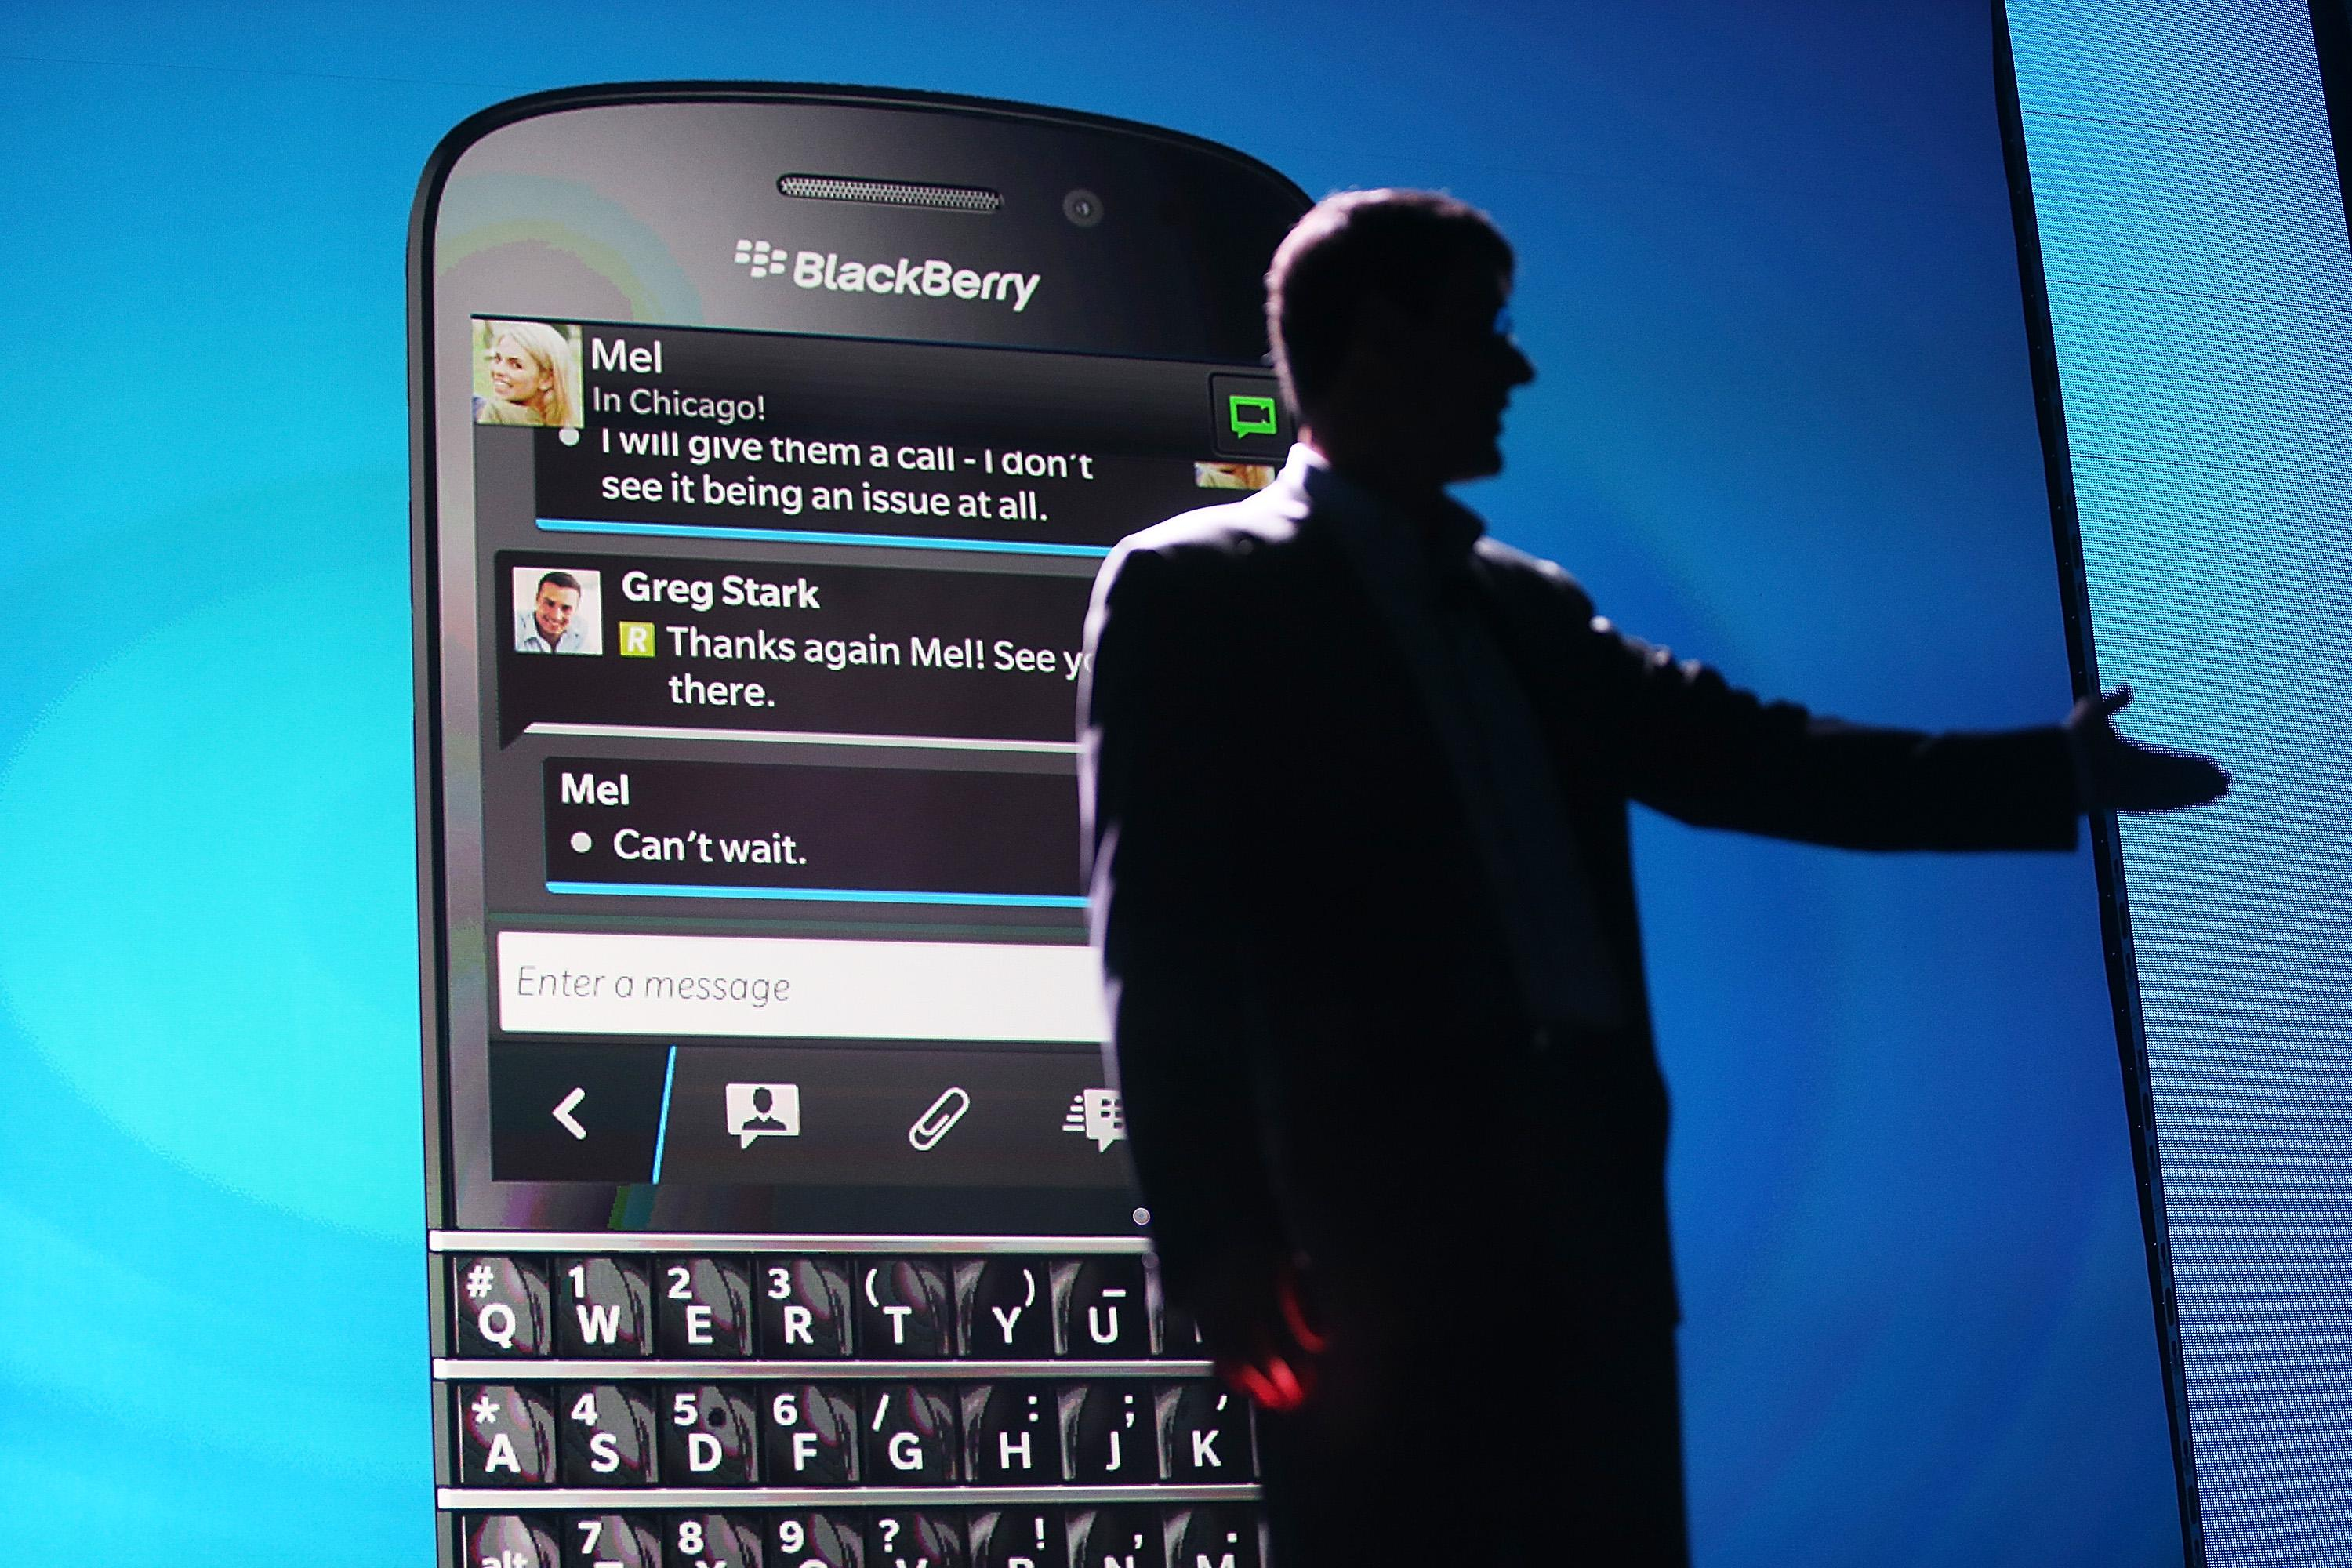 BlackBerry Chief Executive Officer Thorsten Heins speaks in front of a display of one of the new Blackberry 10 smartphones at the BlackBerry 10 launch event by Research in Motion on Jan. 30 in New York City.